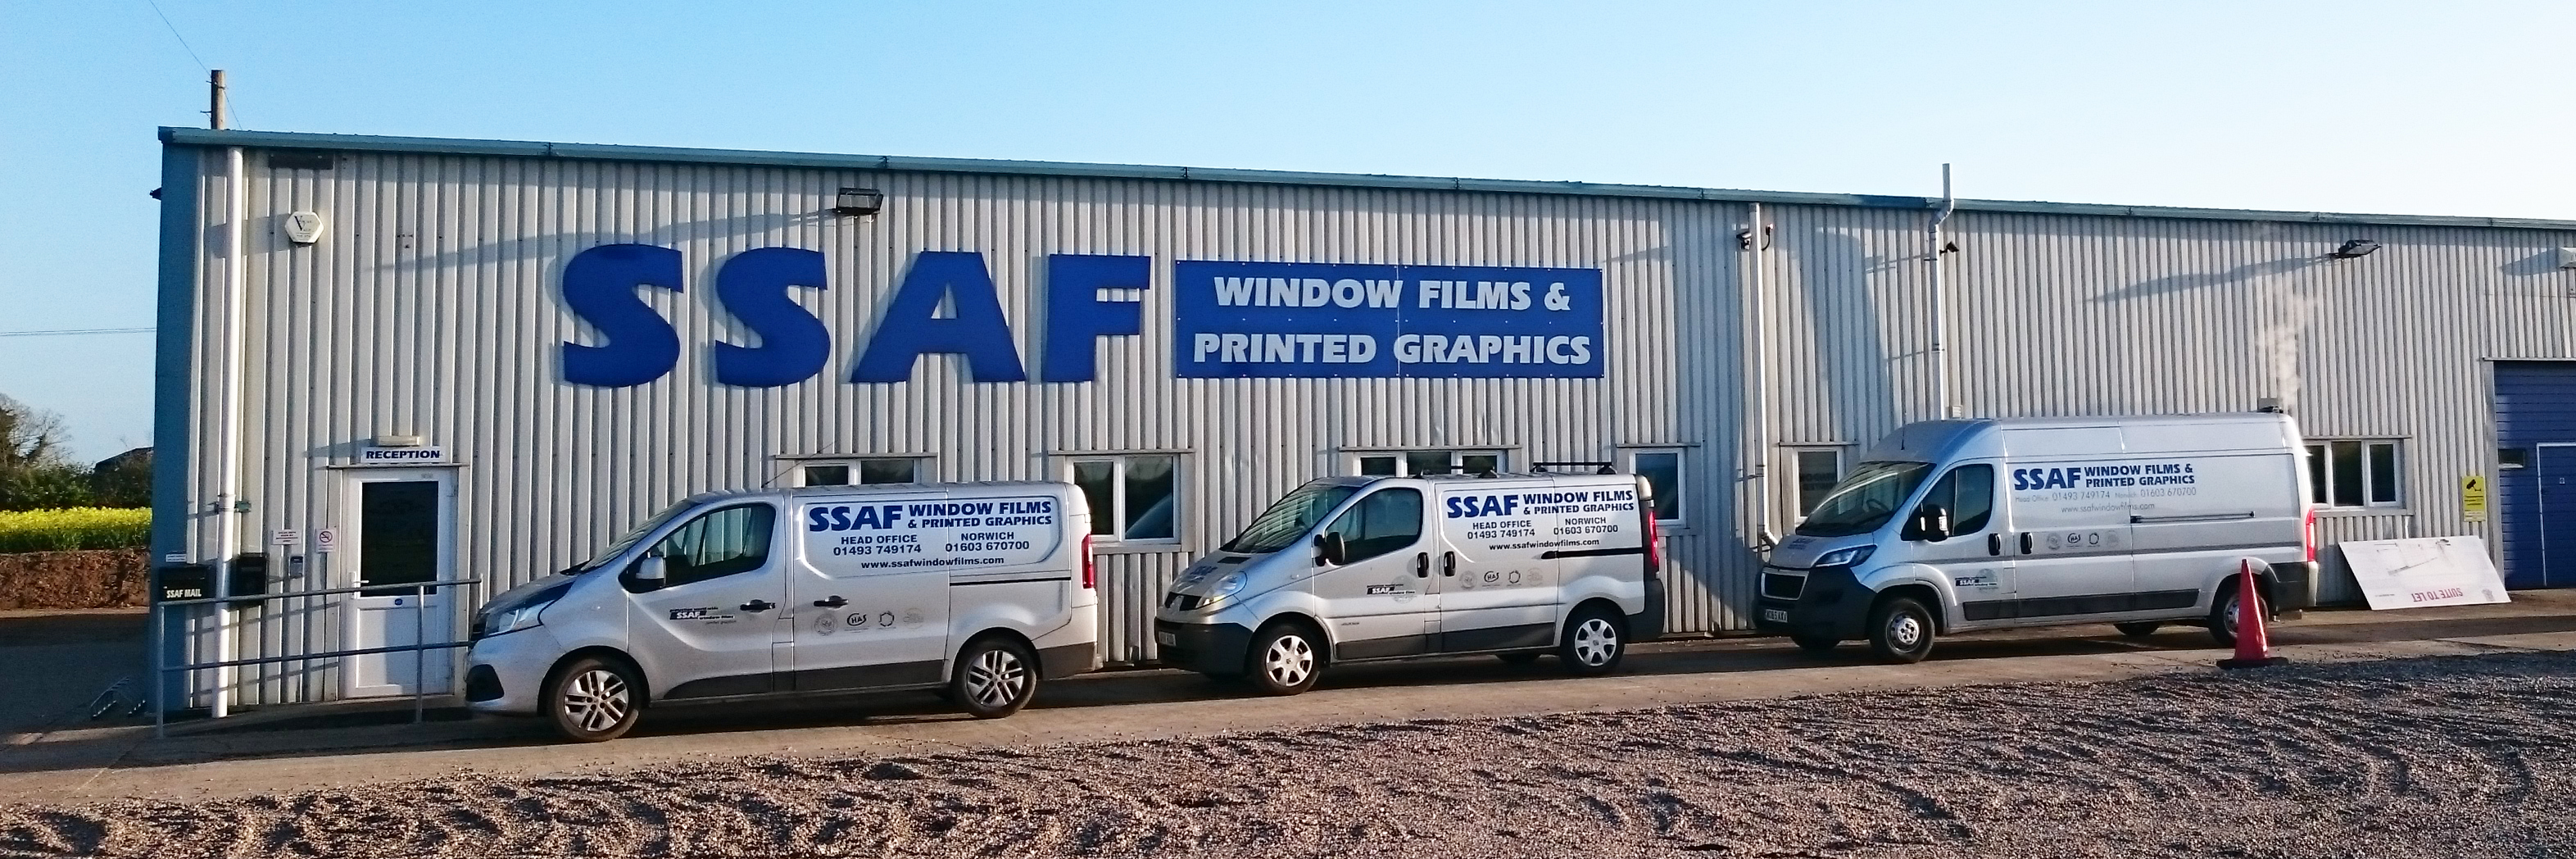 SSAF Window Films Work Shop